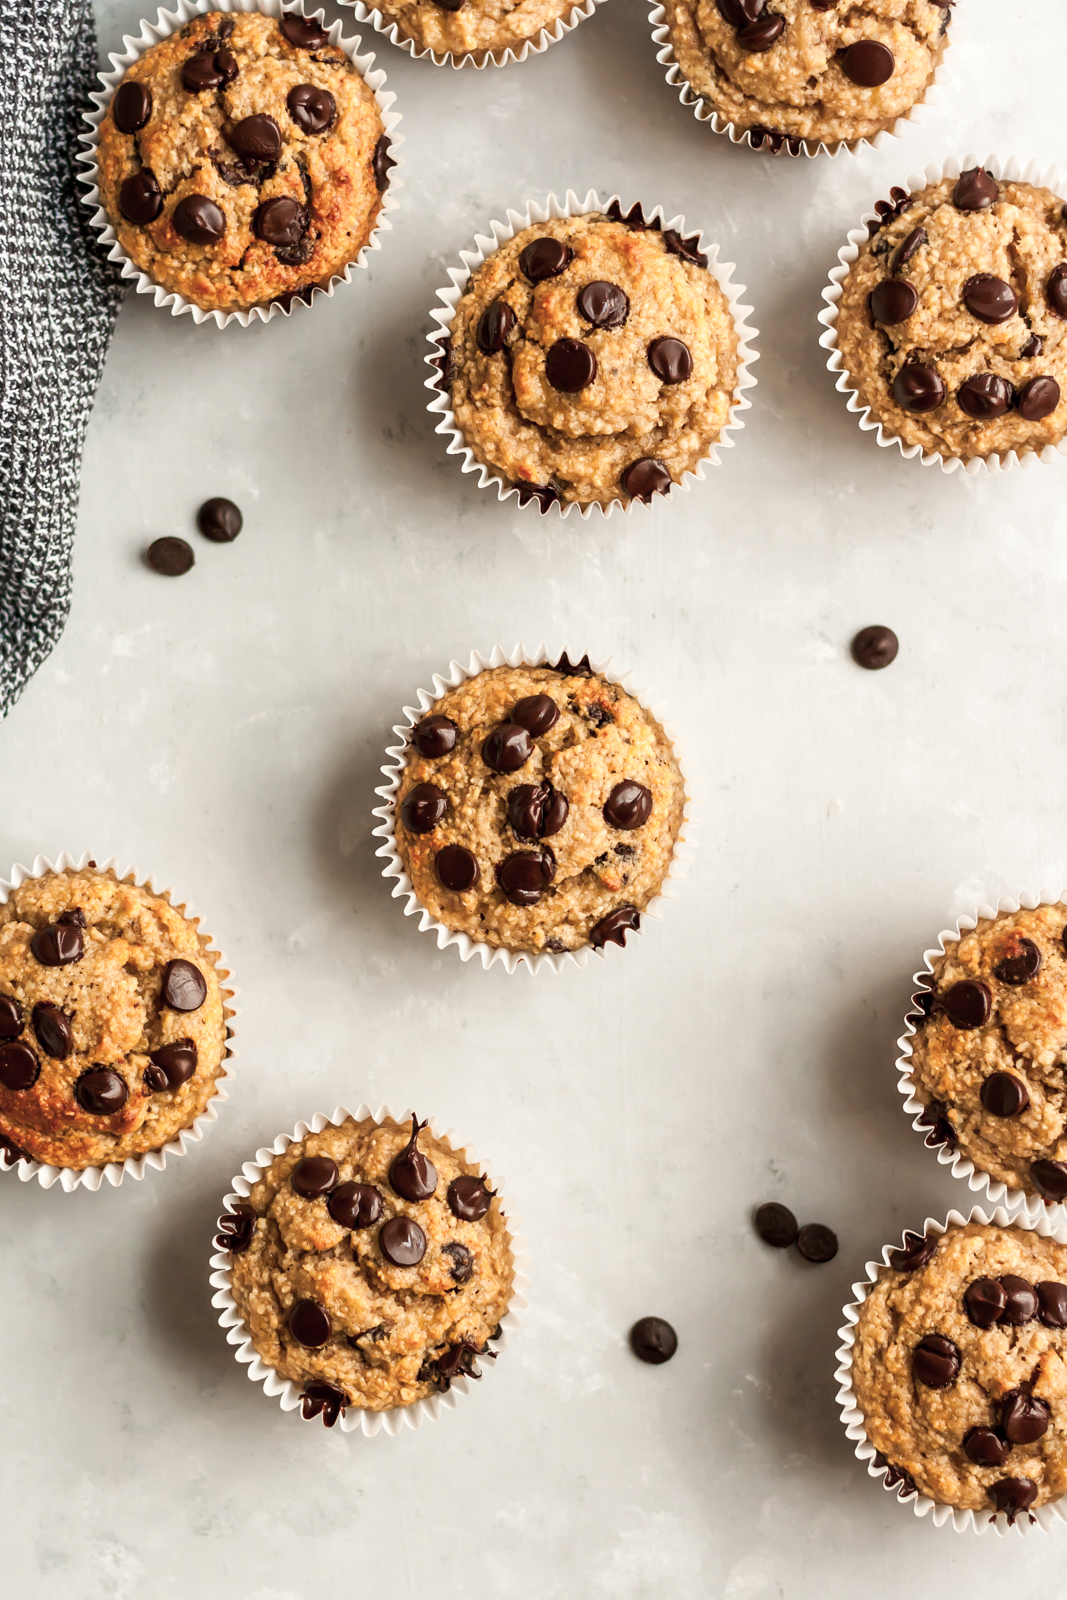 Fluffy, healthy dairy free and gluten free banana muffins with chocolate chips. Sweetened with bananas and pure maple syrup and made with a mix of almond flour and oat flour! These muffins are freezer-friendly and great for breakfasts or snacks!